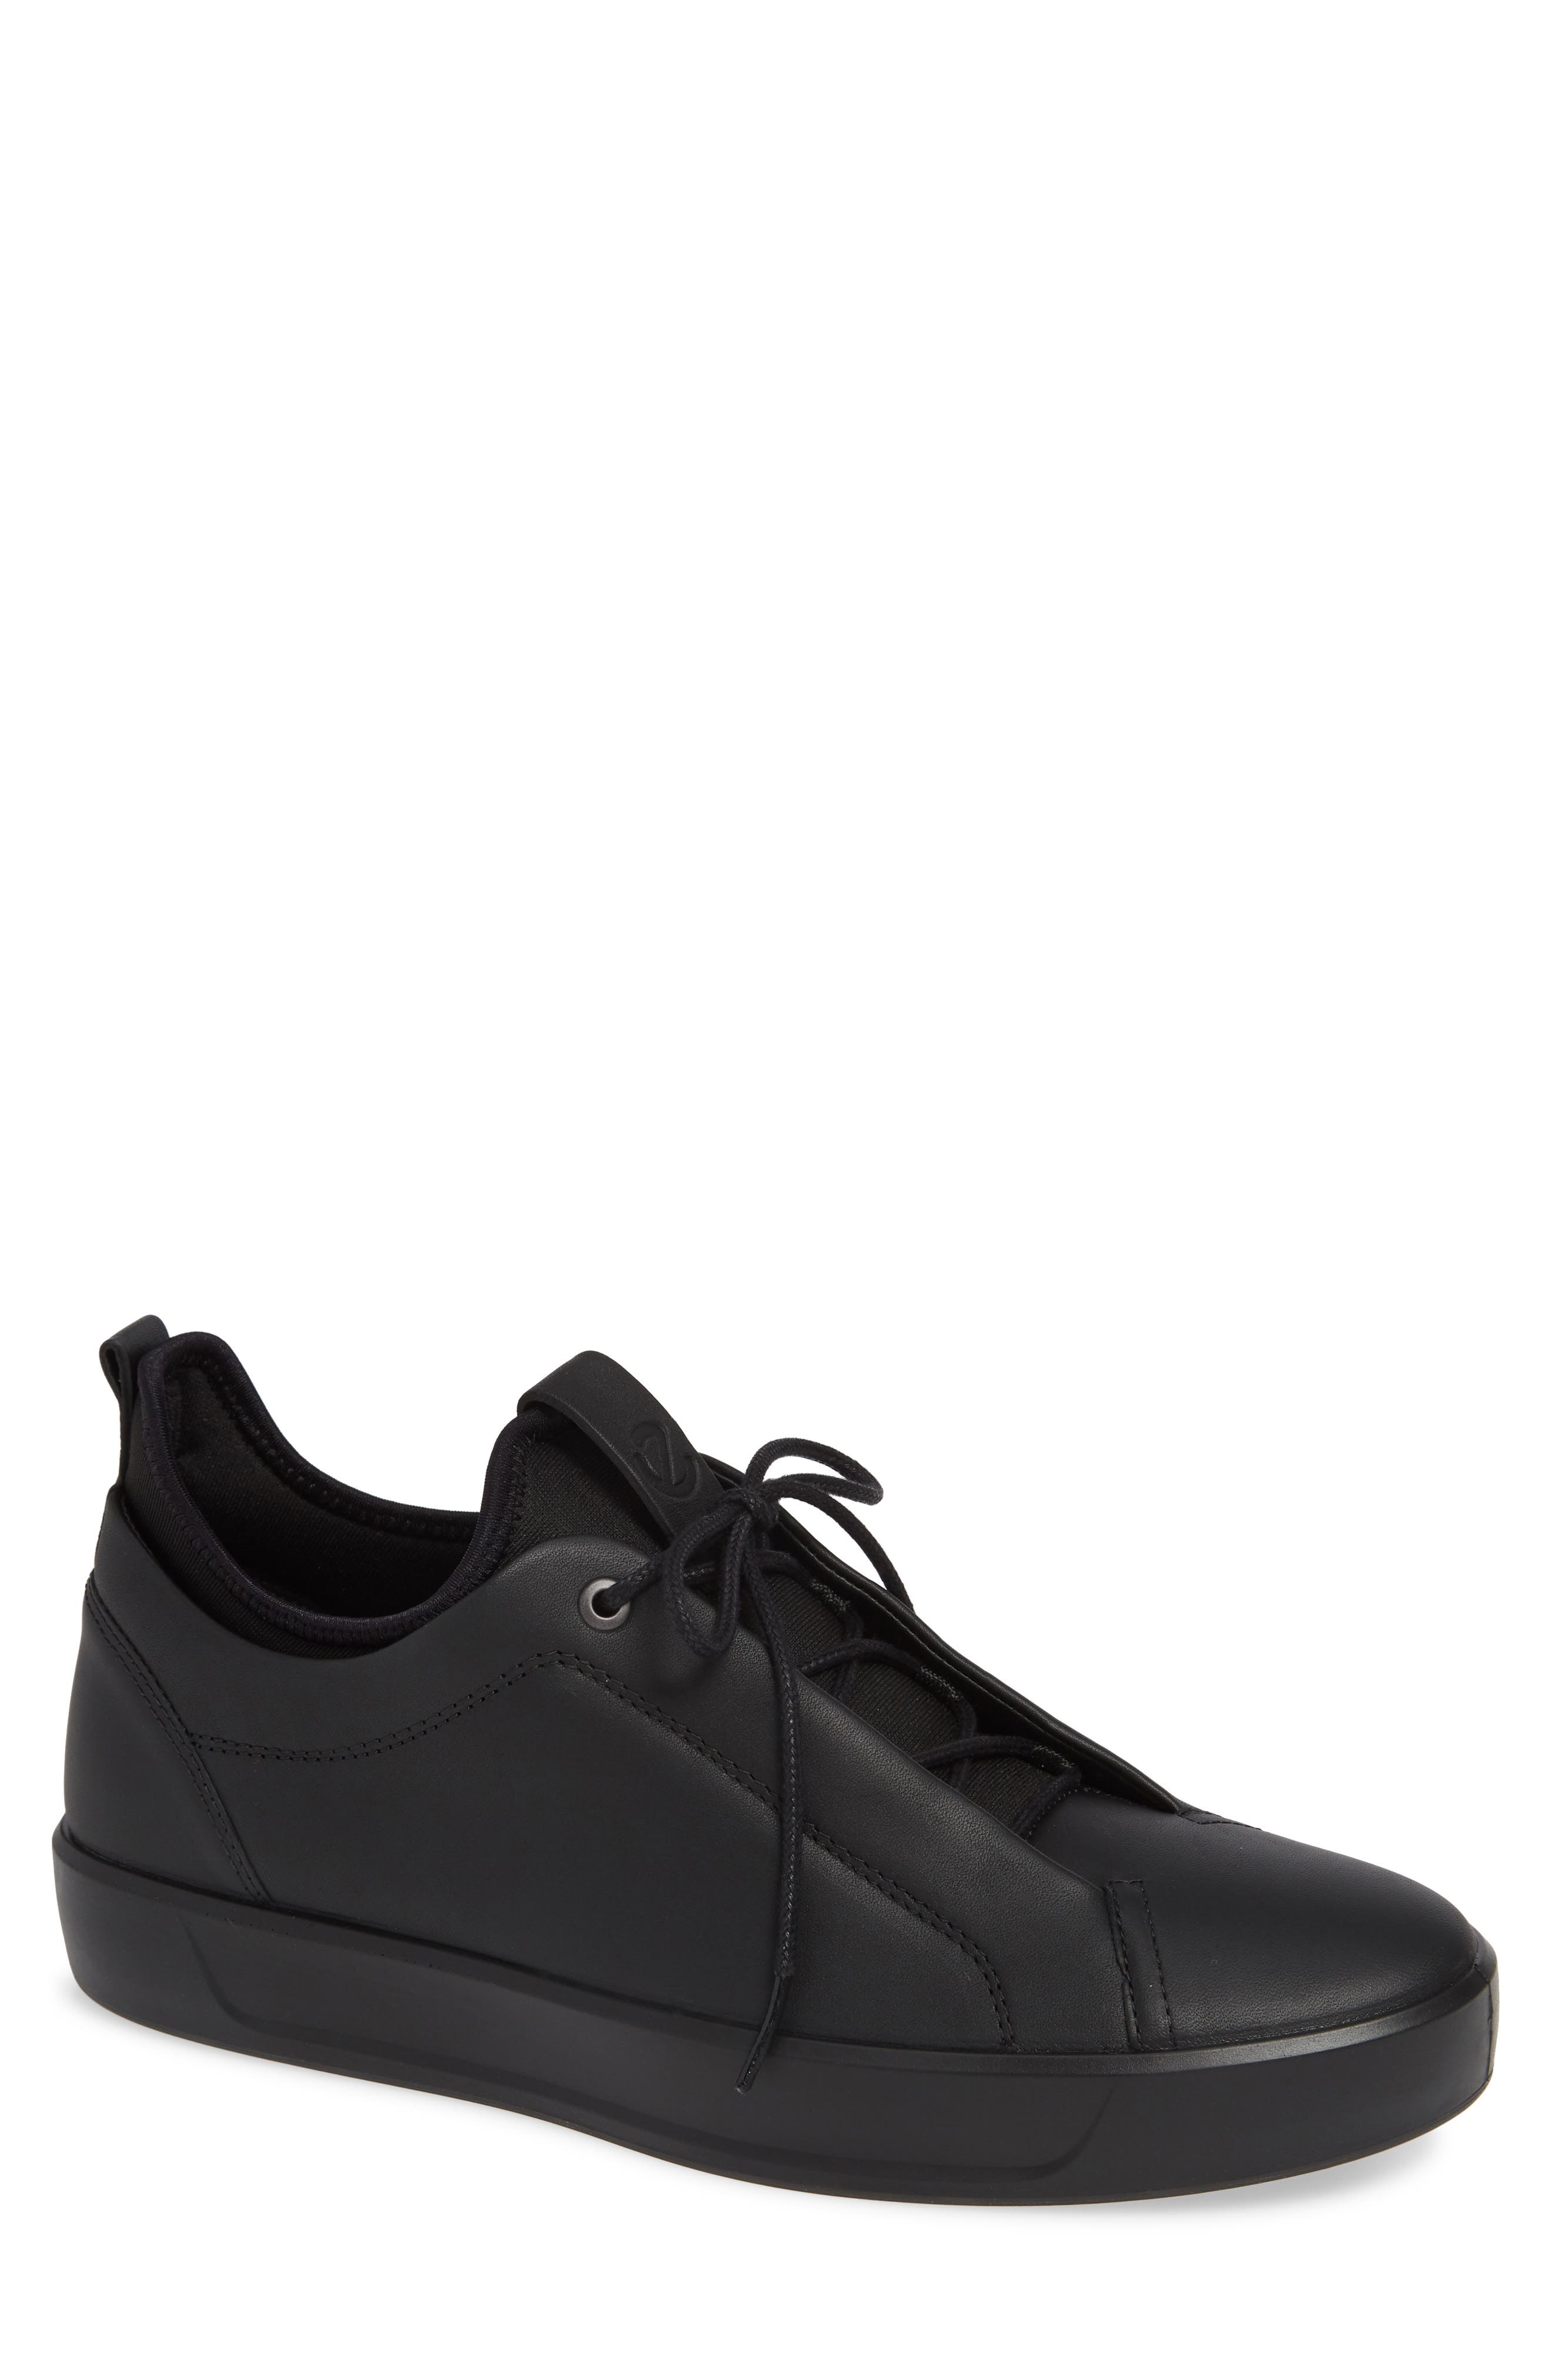 Soft 8 Low Top Sneaker,                             Main thumbnail 1, color,                             BLACK LEATHER